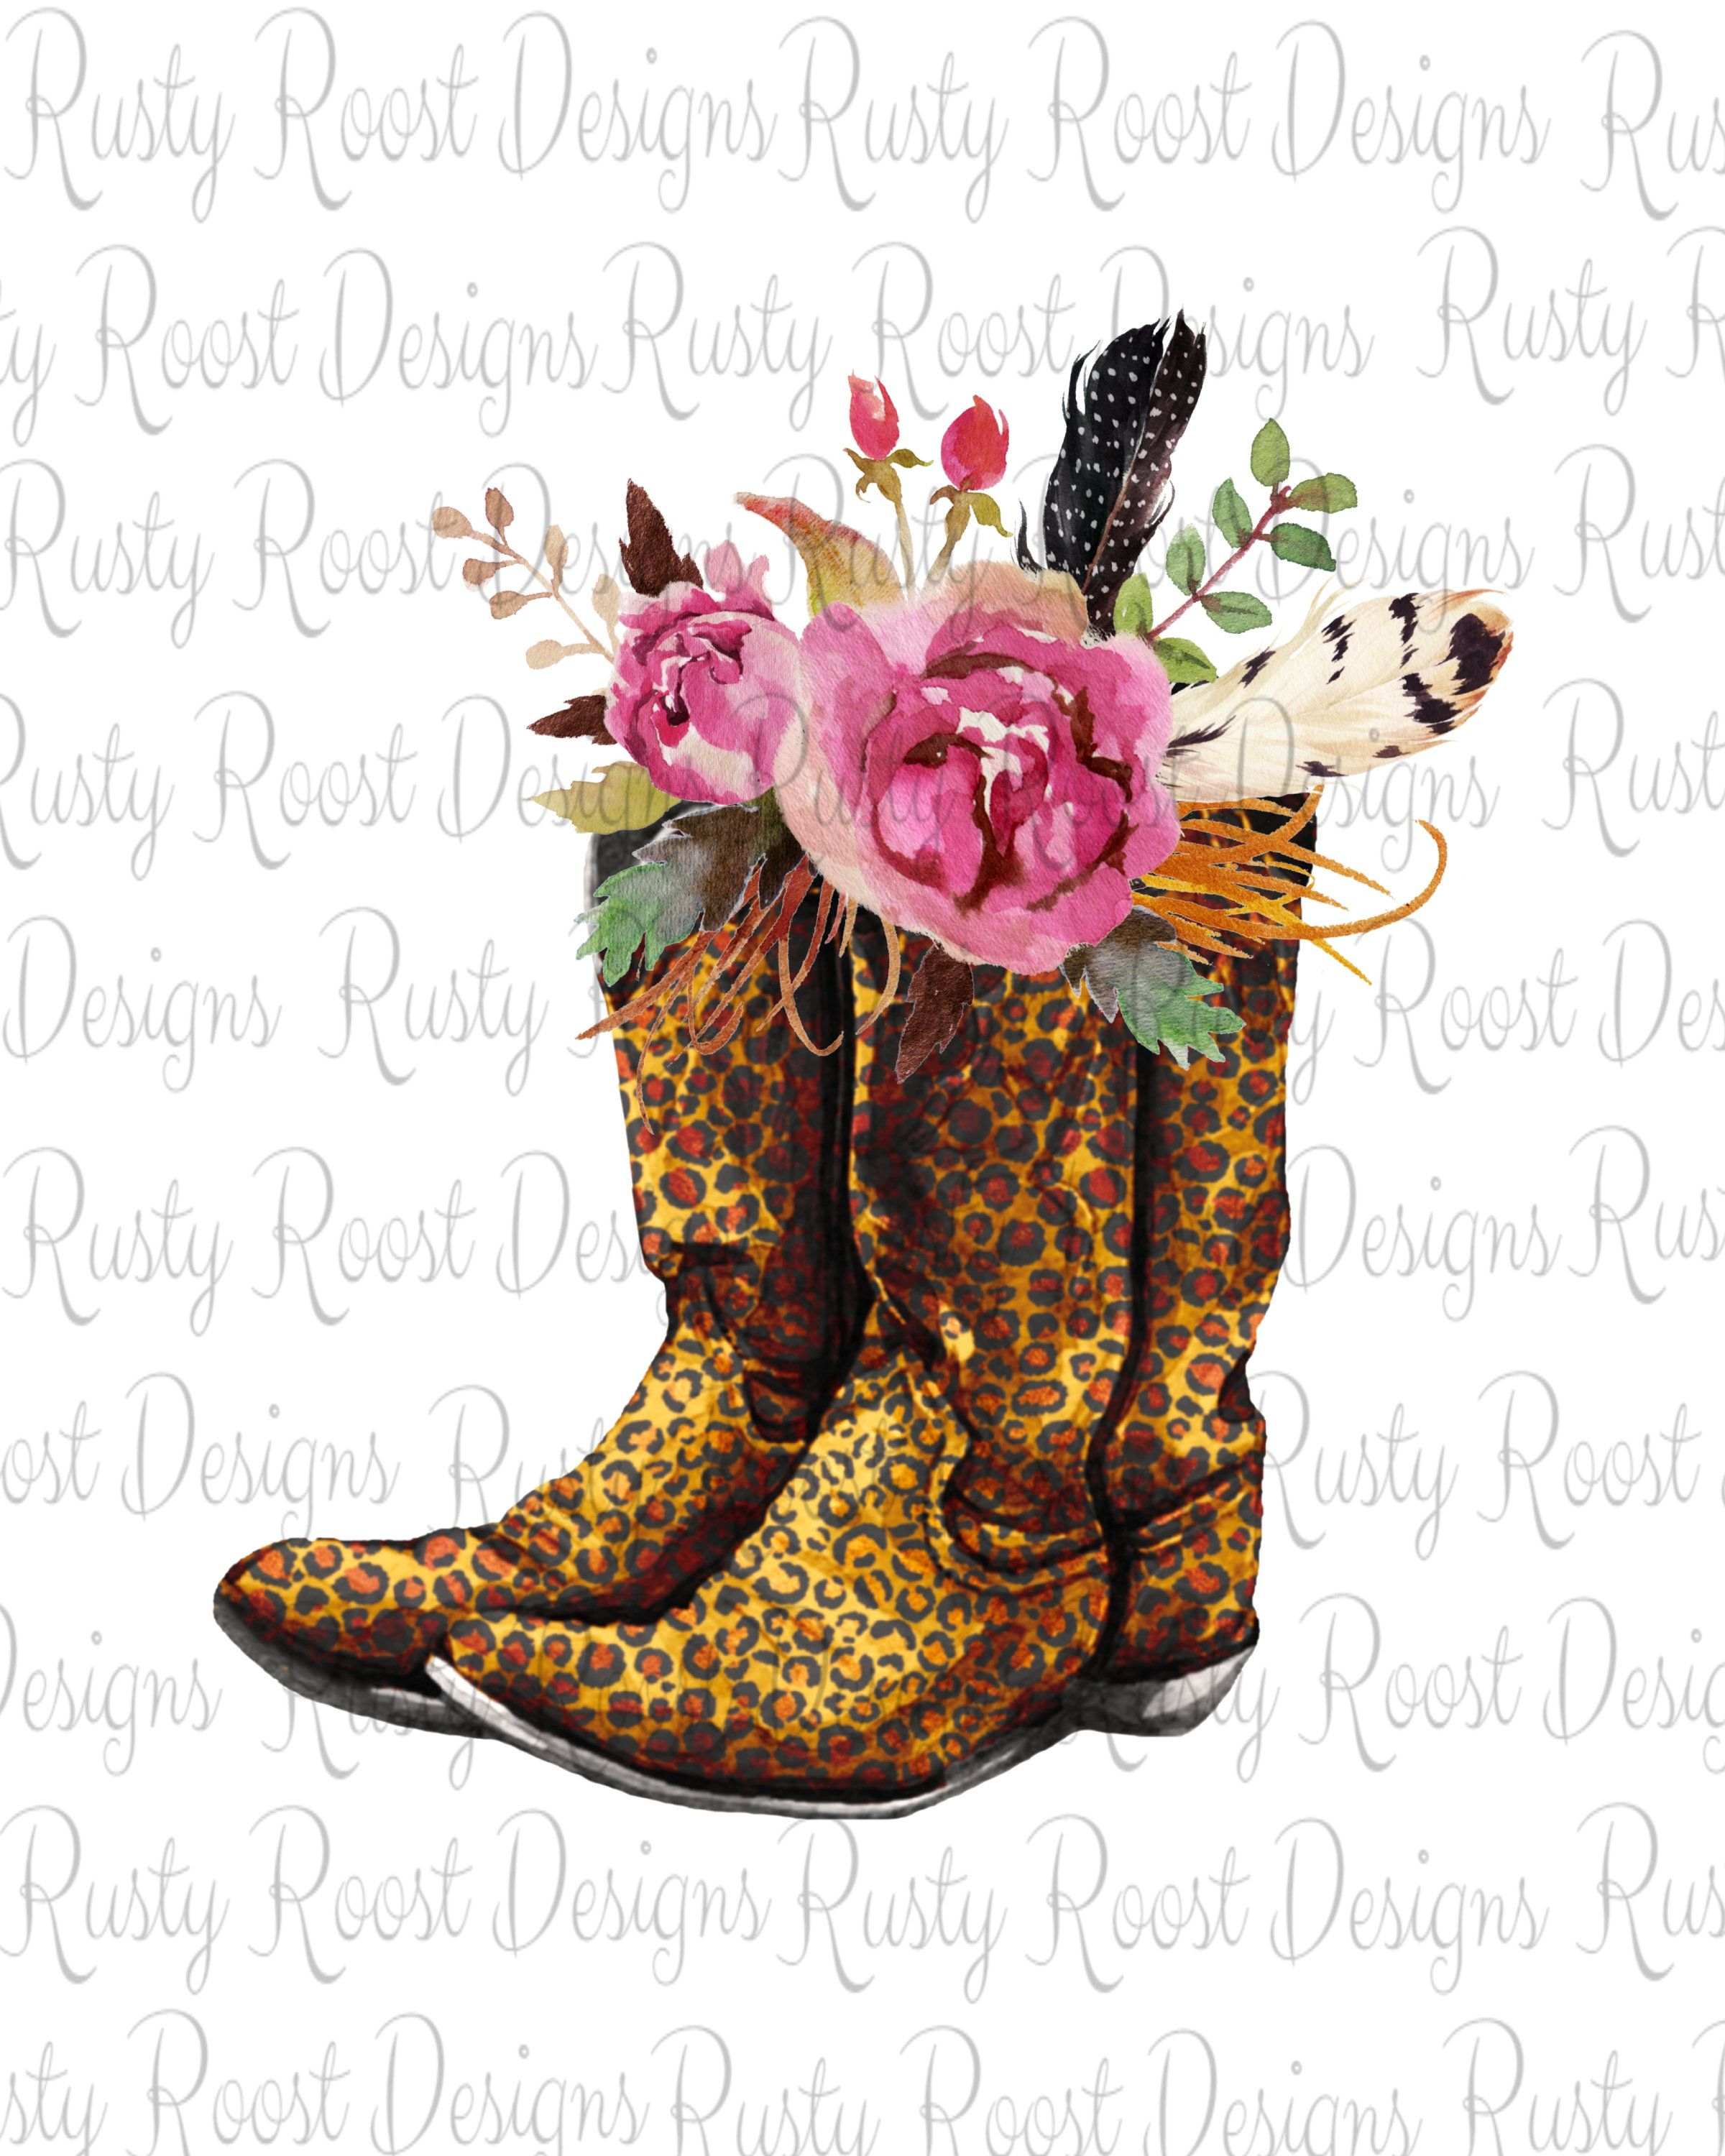 Cowgirl Leopard Boots Pngsublimation Design Downloadleopard Etsy In 2020 Leopard Boots Cowgirl Shirts Cowboy Boots